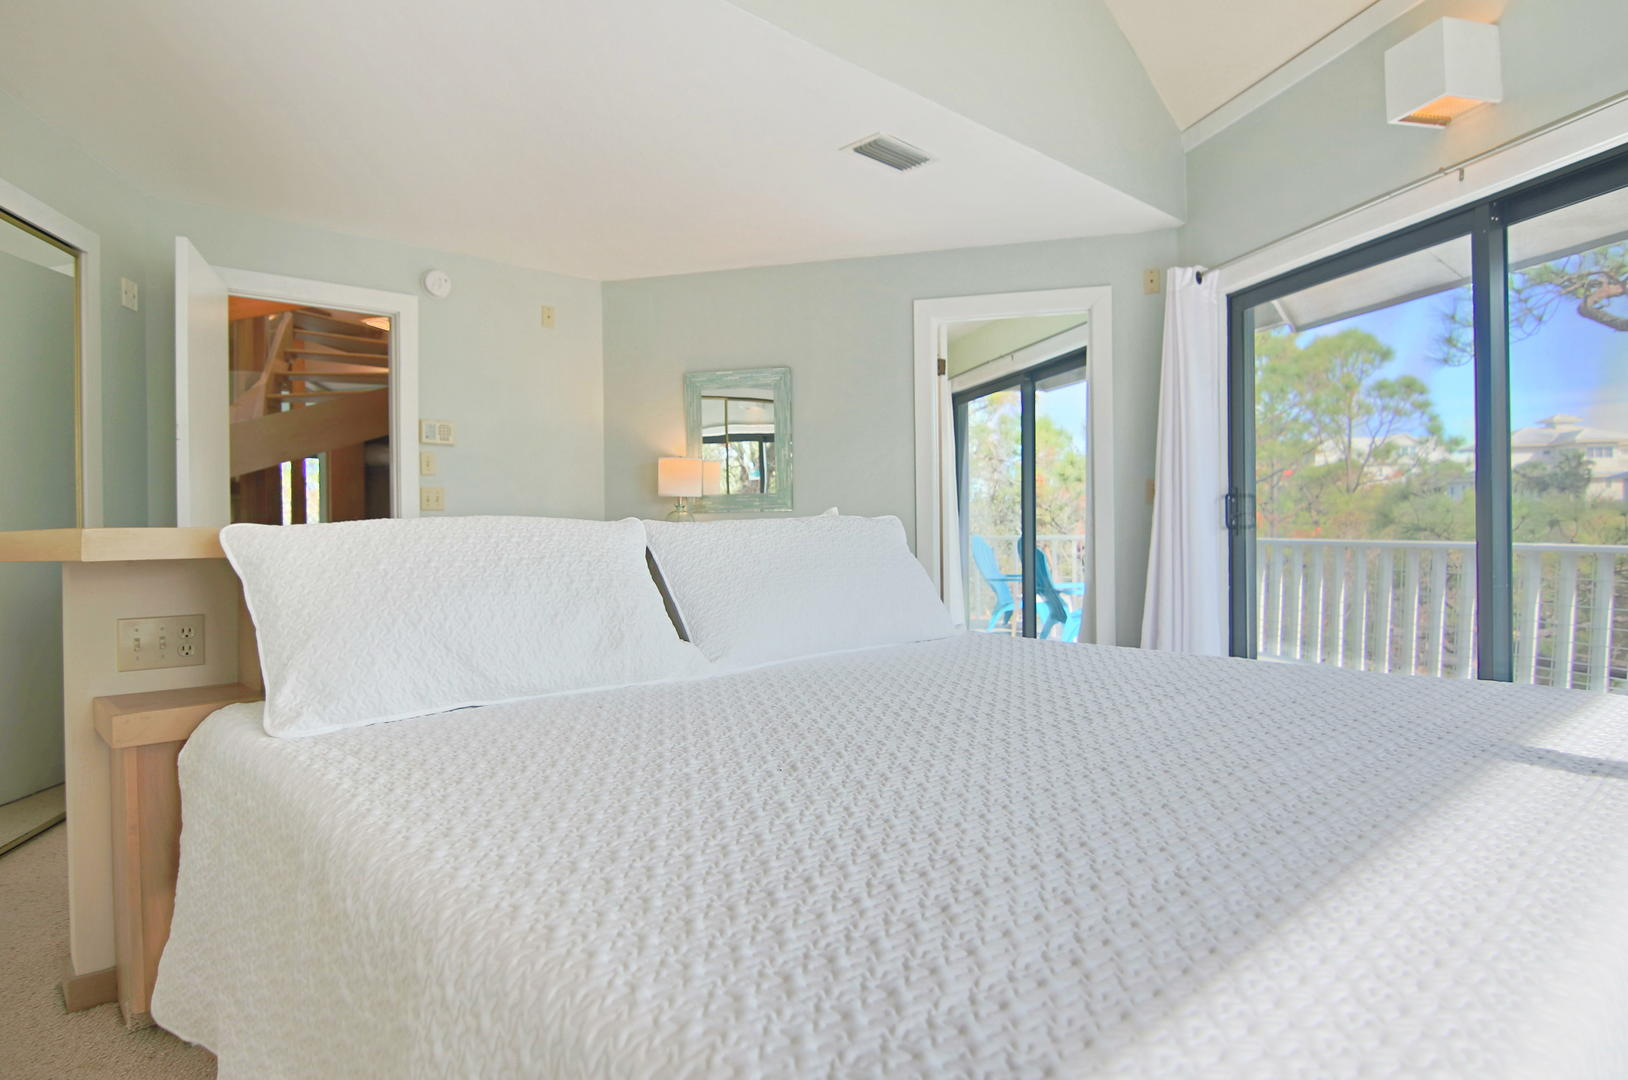 After a long day of sand and sun, unwind on this comfortable King bed